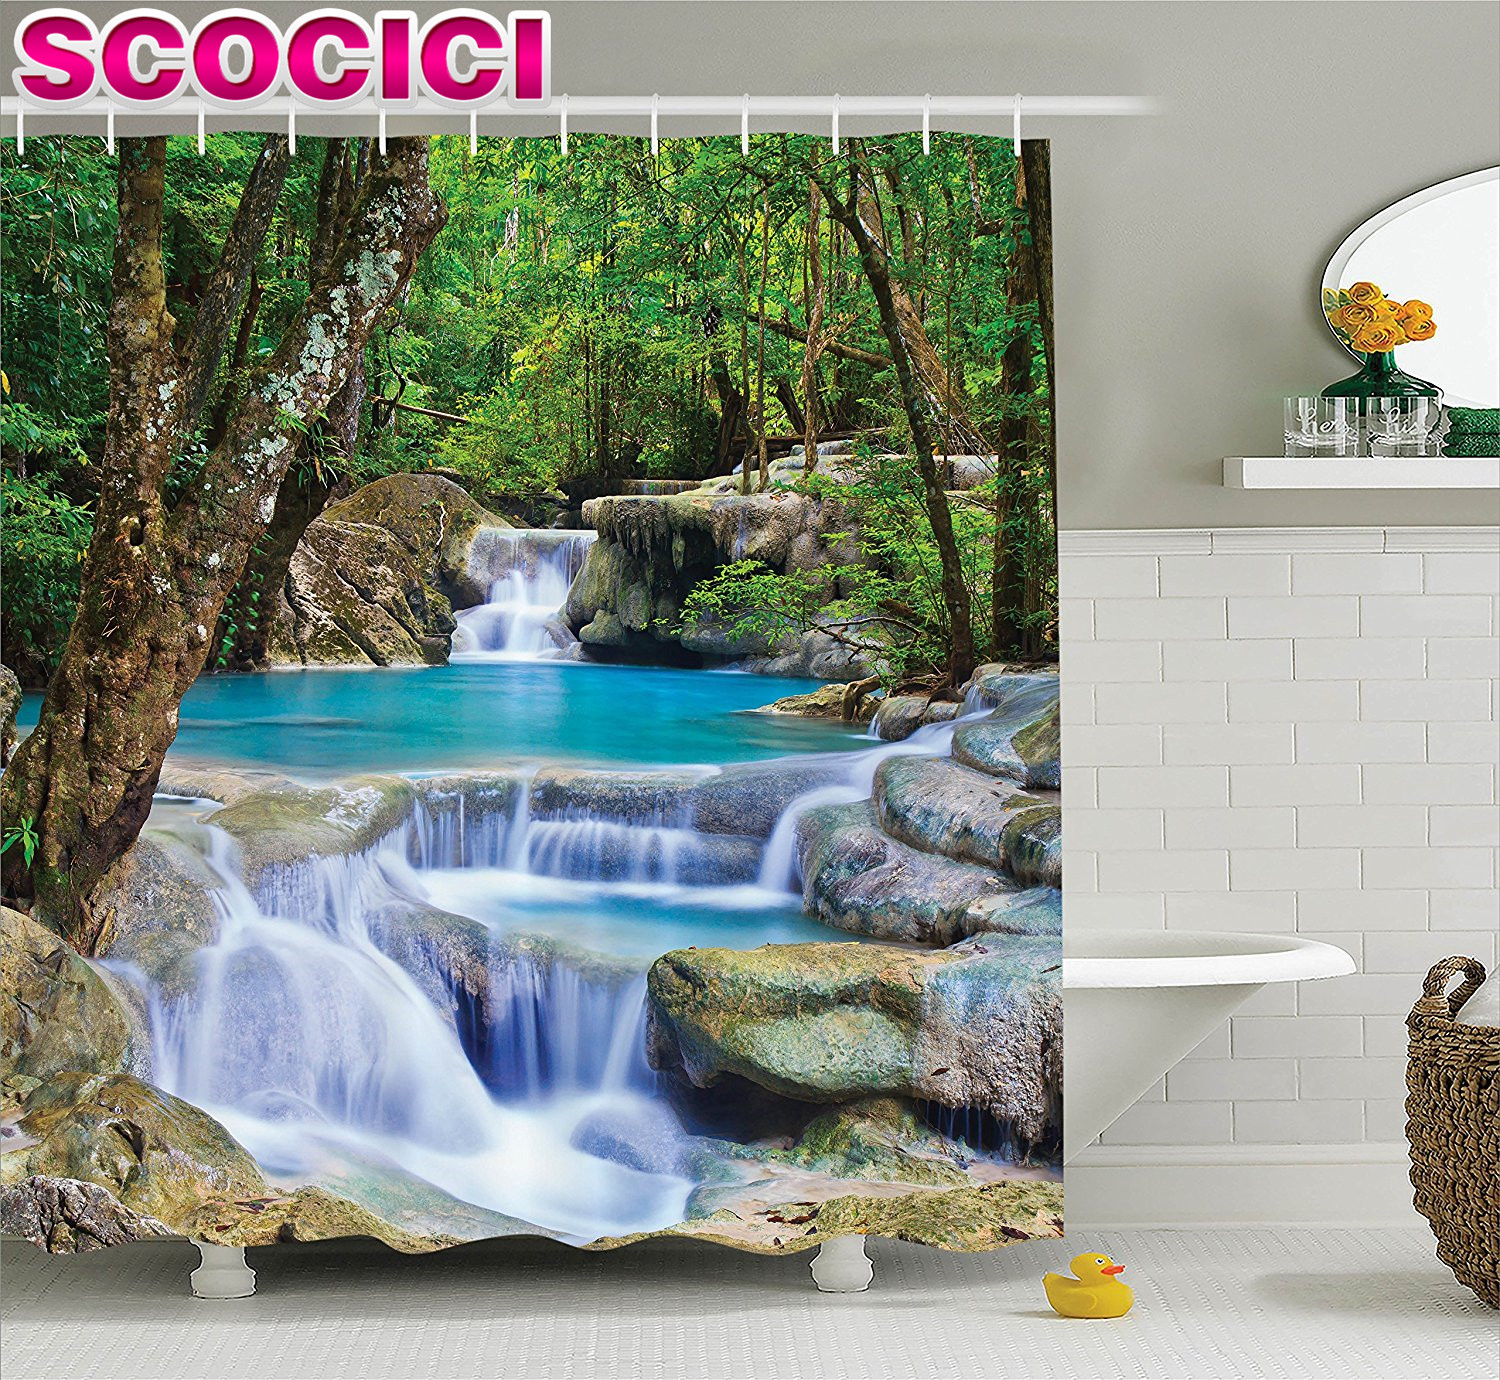 natural waterfall decor shower curtain set fairy image of asian waterfall by the rocks in forest secret paradise bathroom access